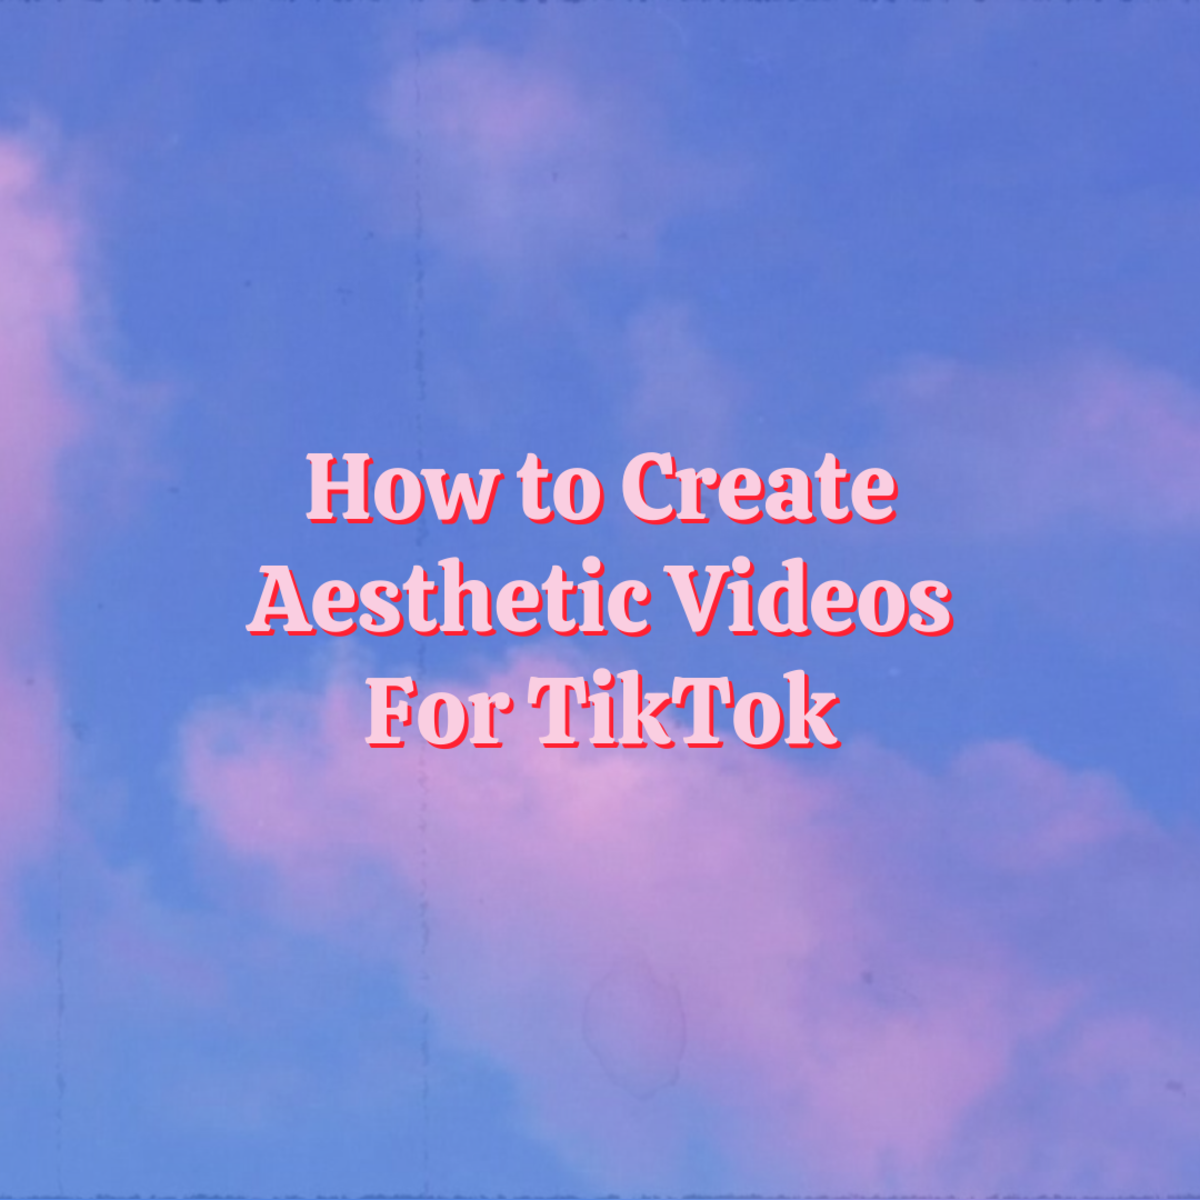 In this guide, we're going to take a look at how to create aesthetic videos for TikTok!